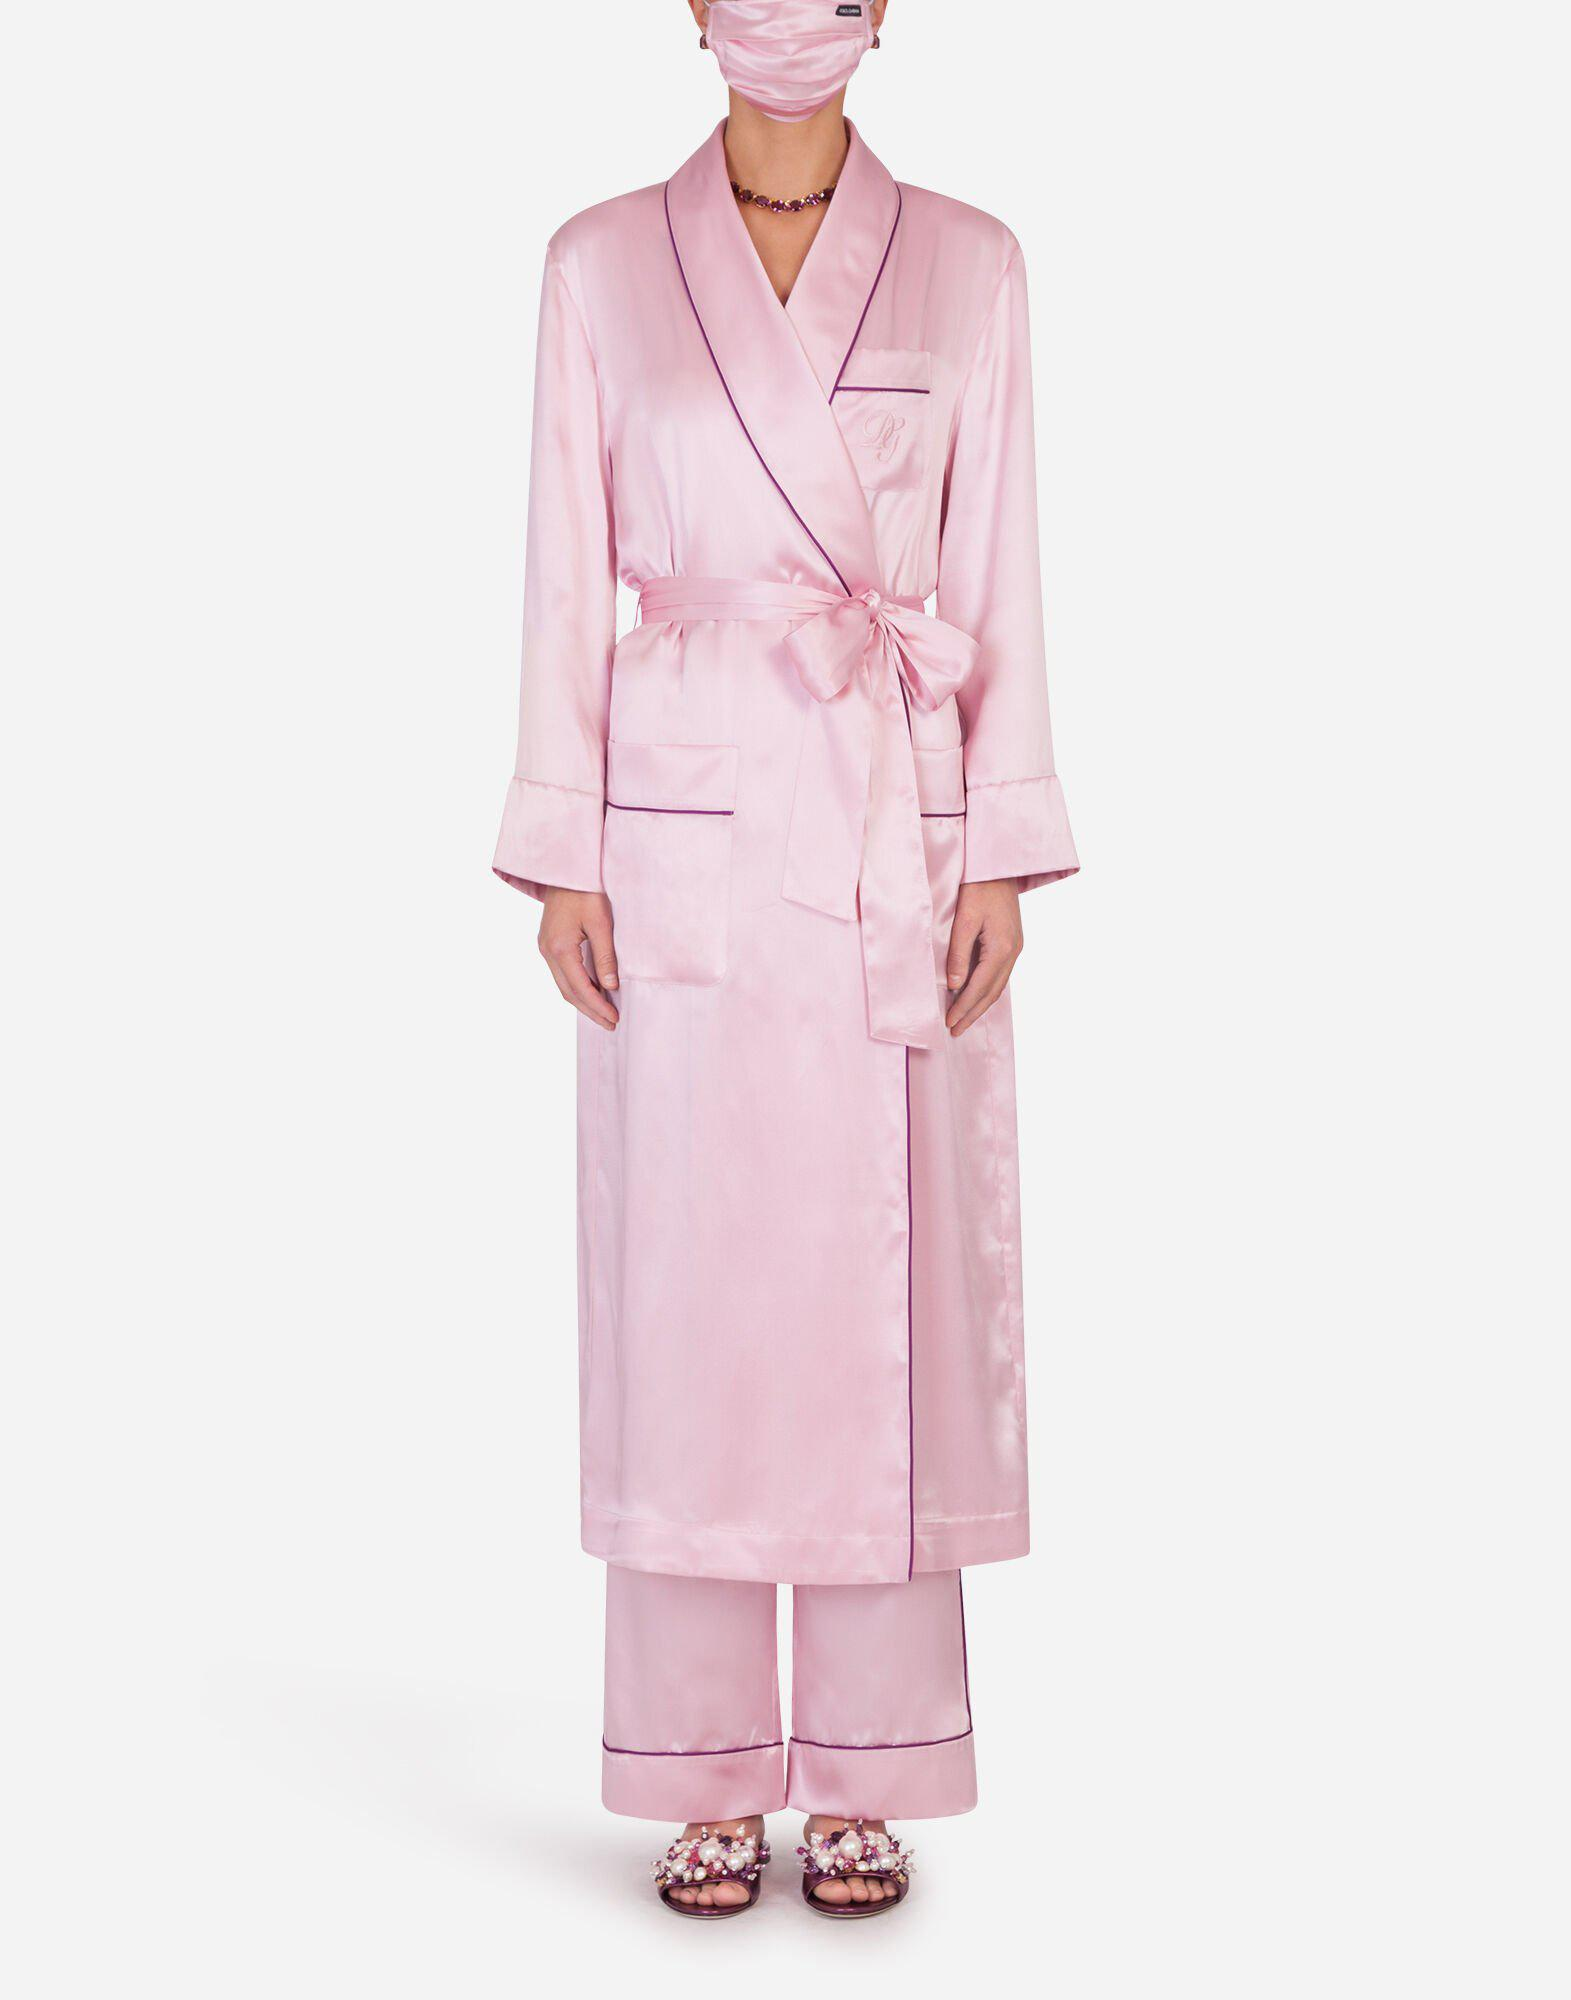 Silk robe with matching face mask